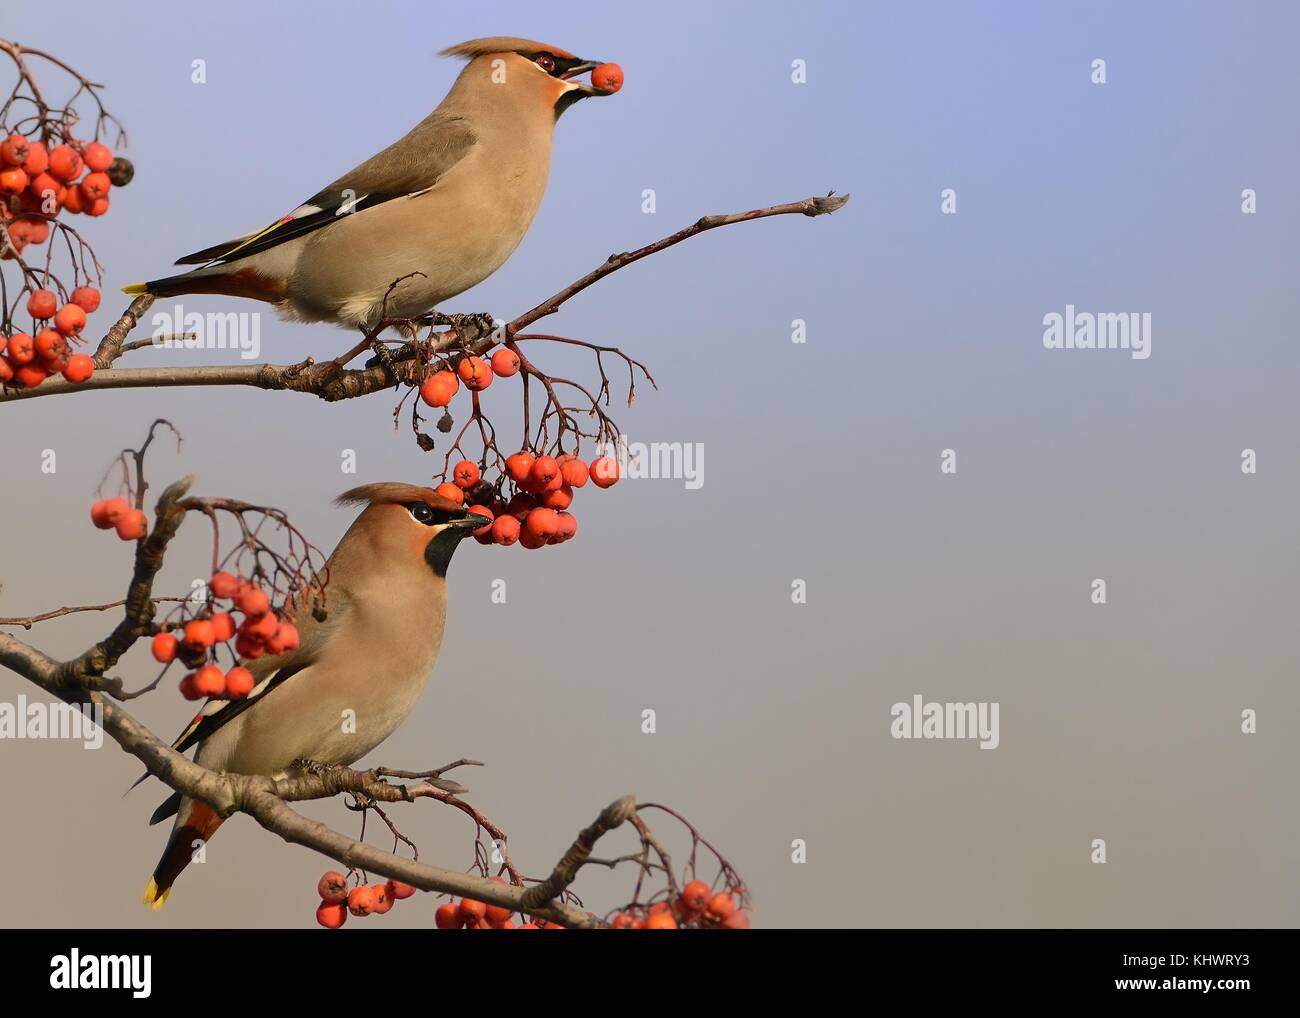 Bohemian Waxwing - Bombycilla garrulus, two waxwings on the rowan tree in winter. - Stock Image